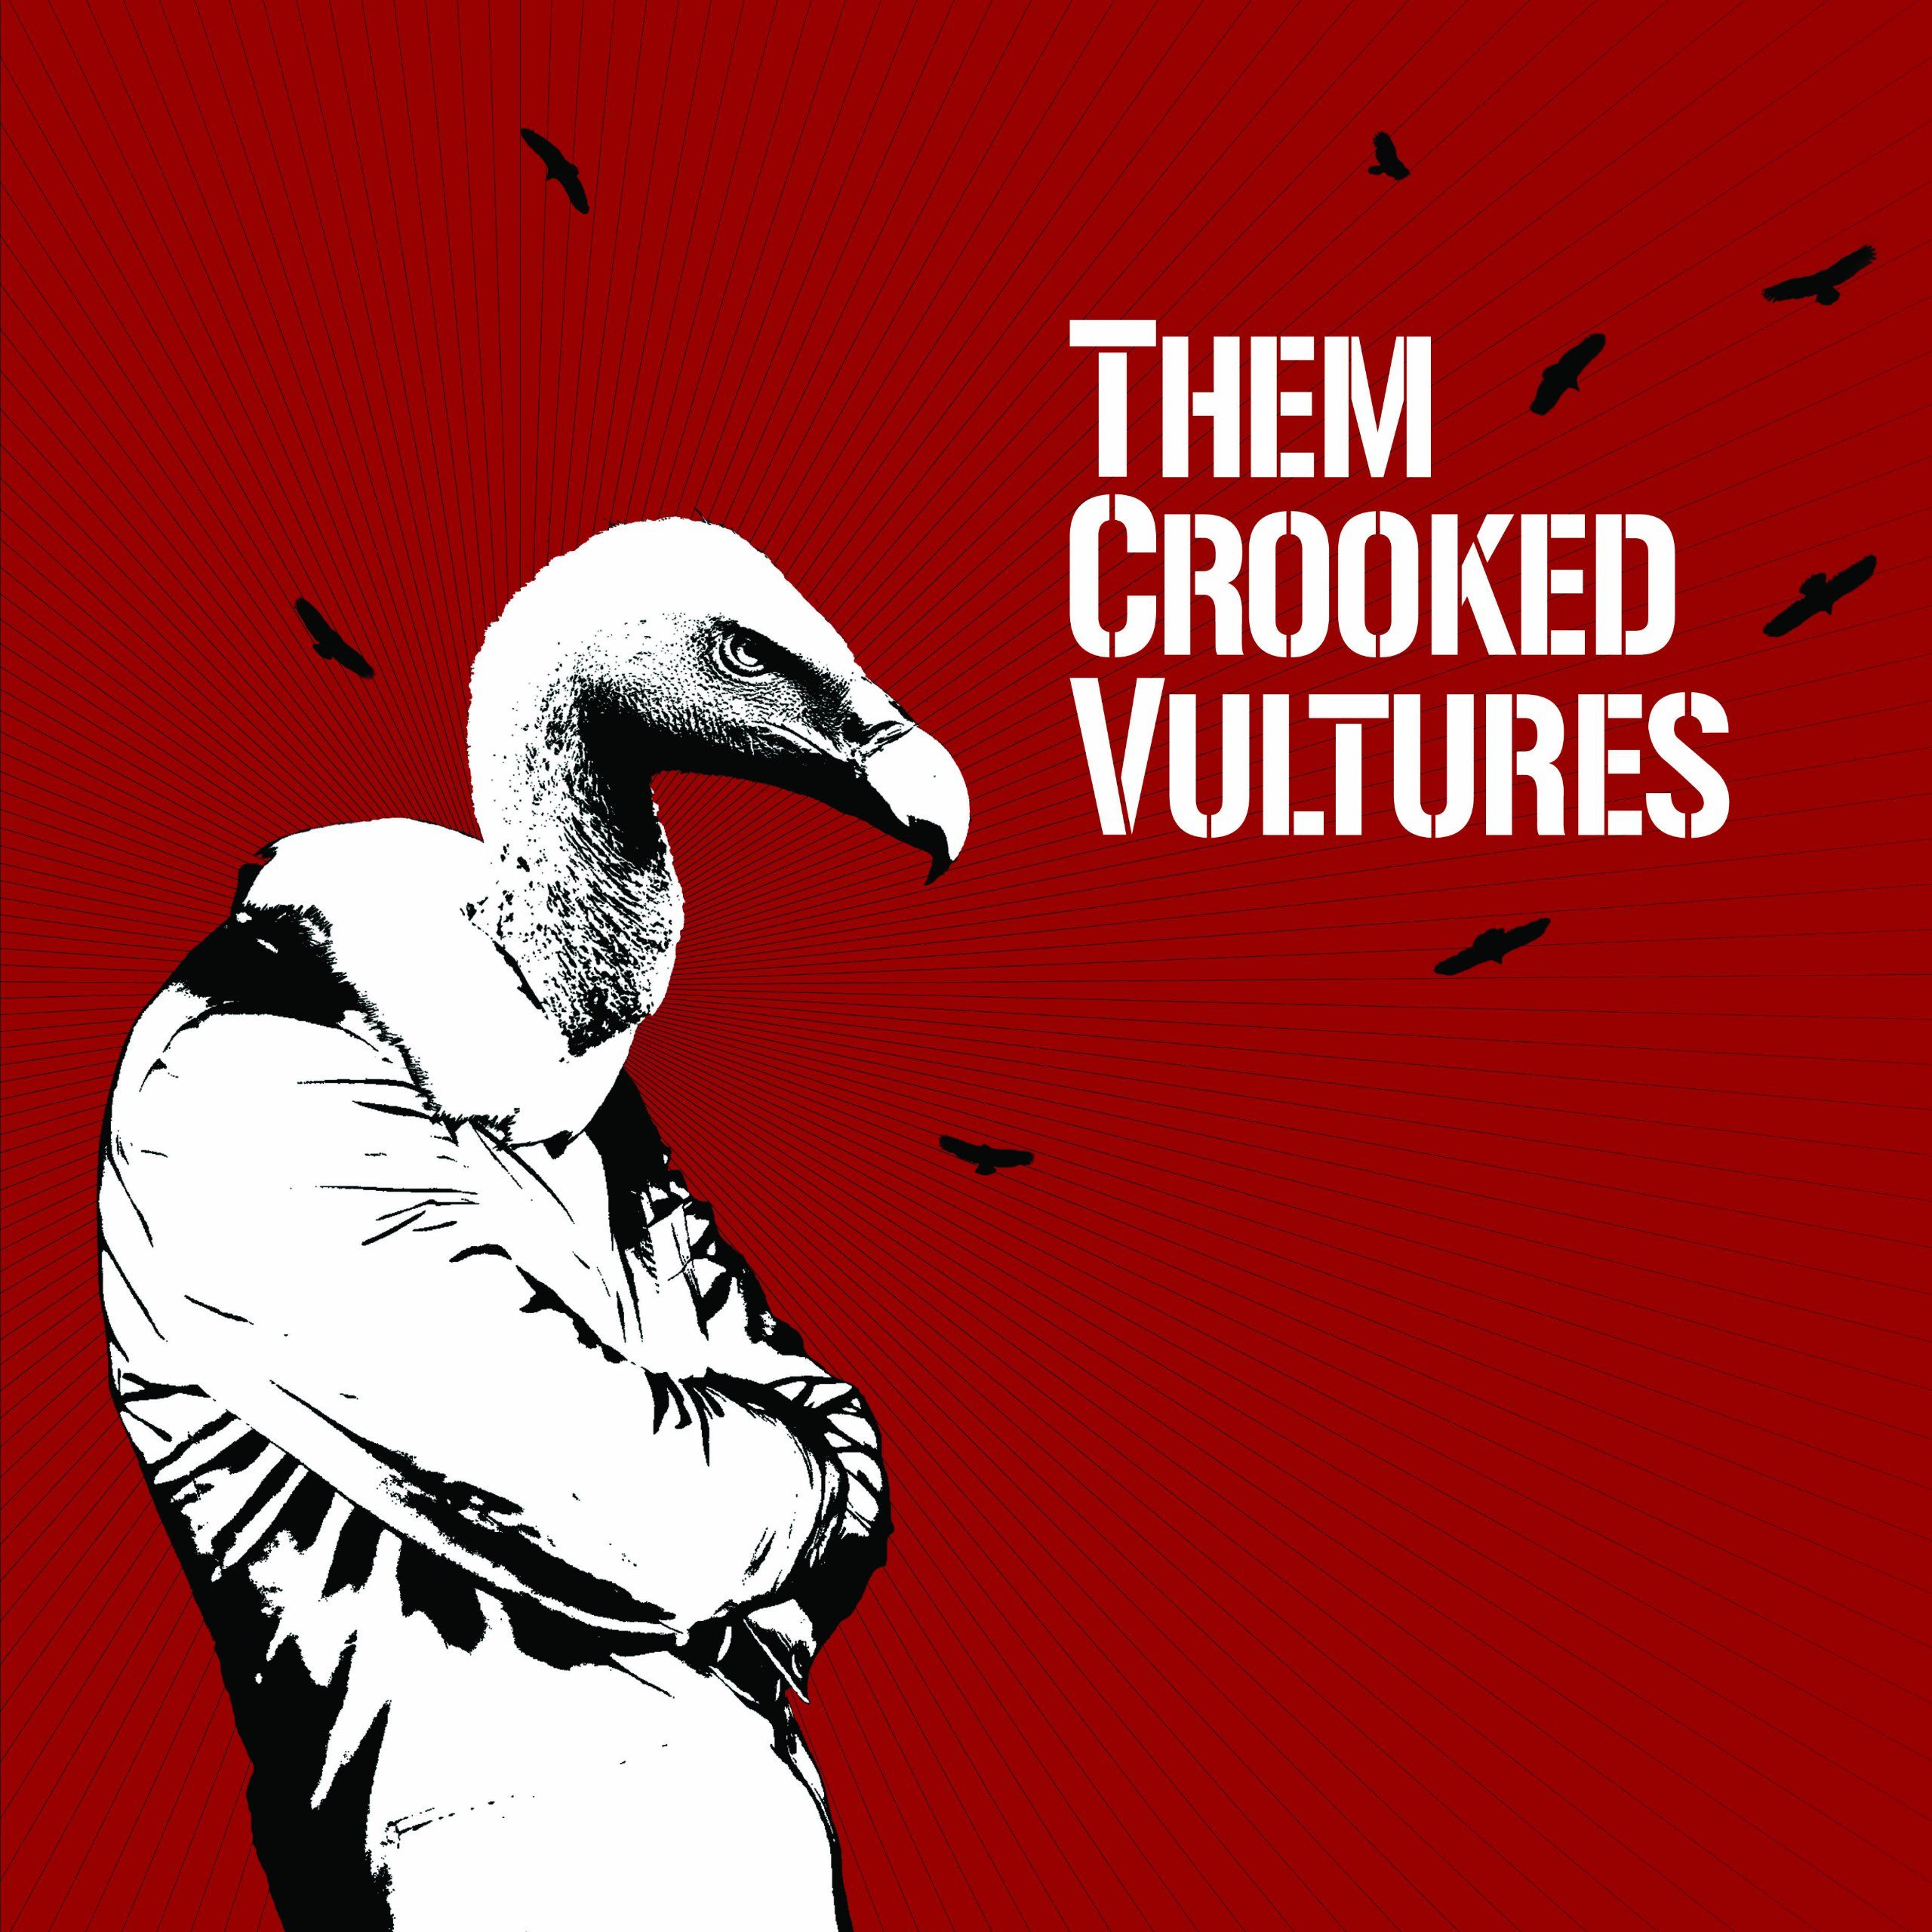 Them Crooked Vultures - Them Crooked Vultures album cover